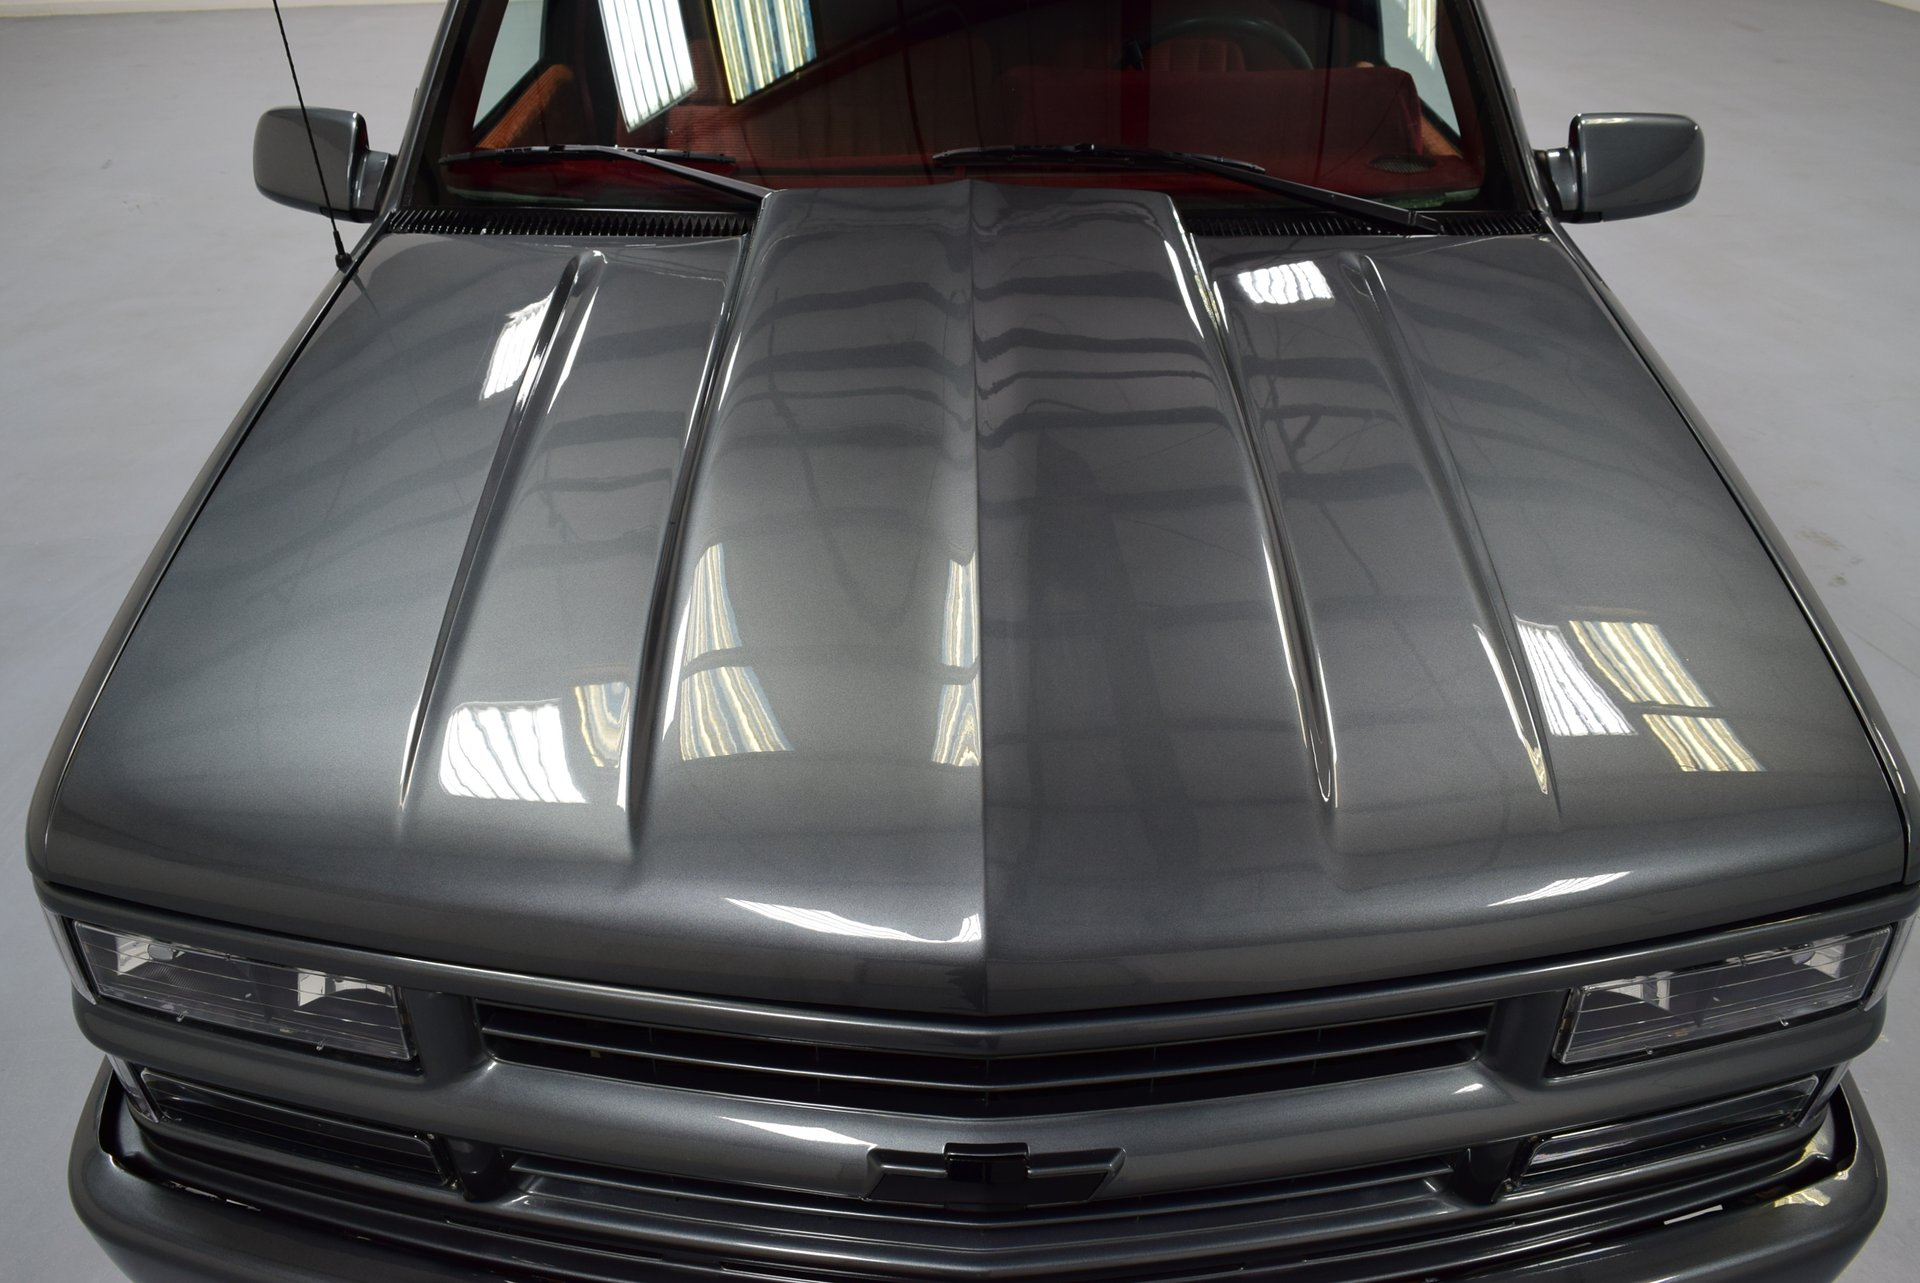 1994 Chevrolet 1500 | Shelton Classics & Performance